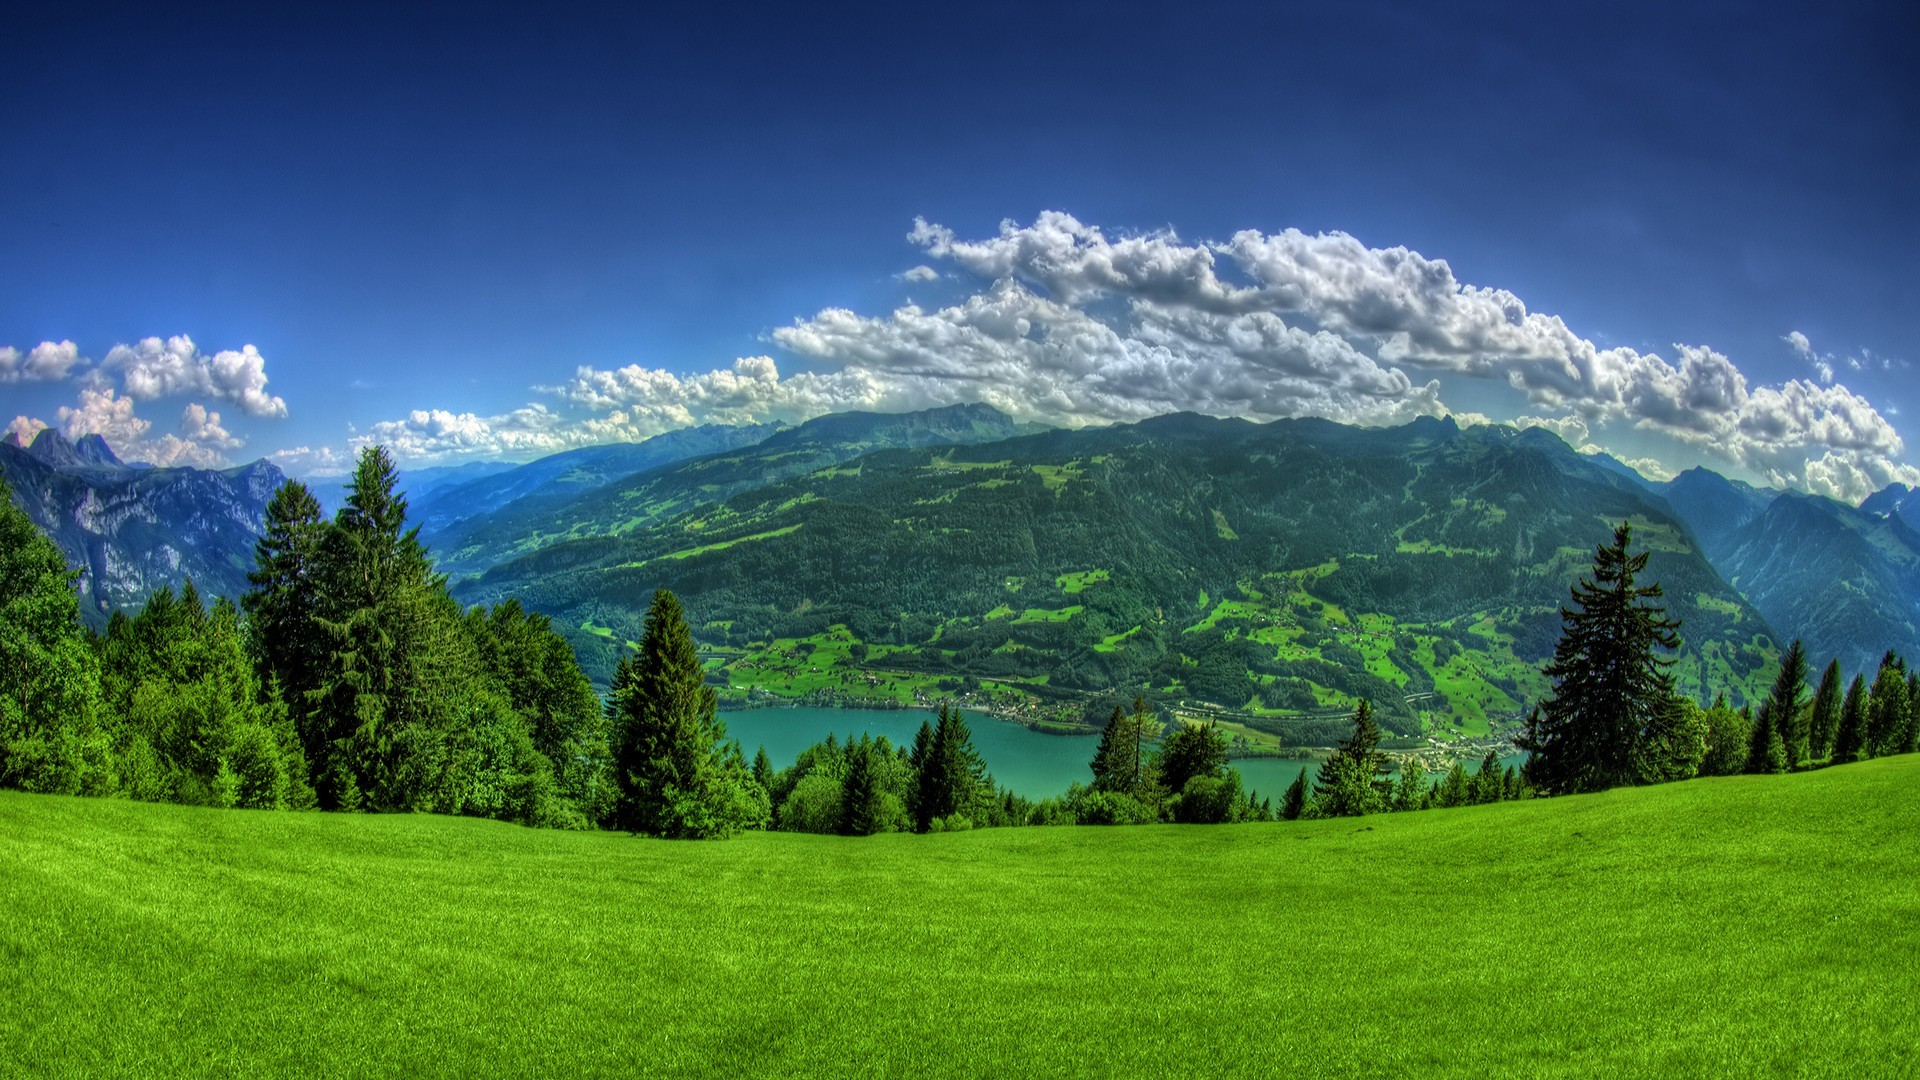 Beautiful nature wallpaper wallpapers for free download about